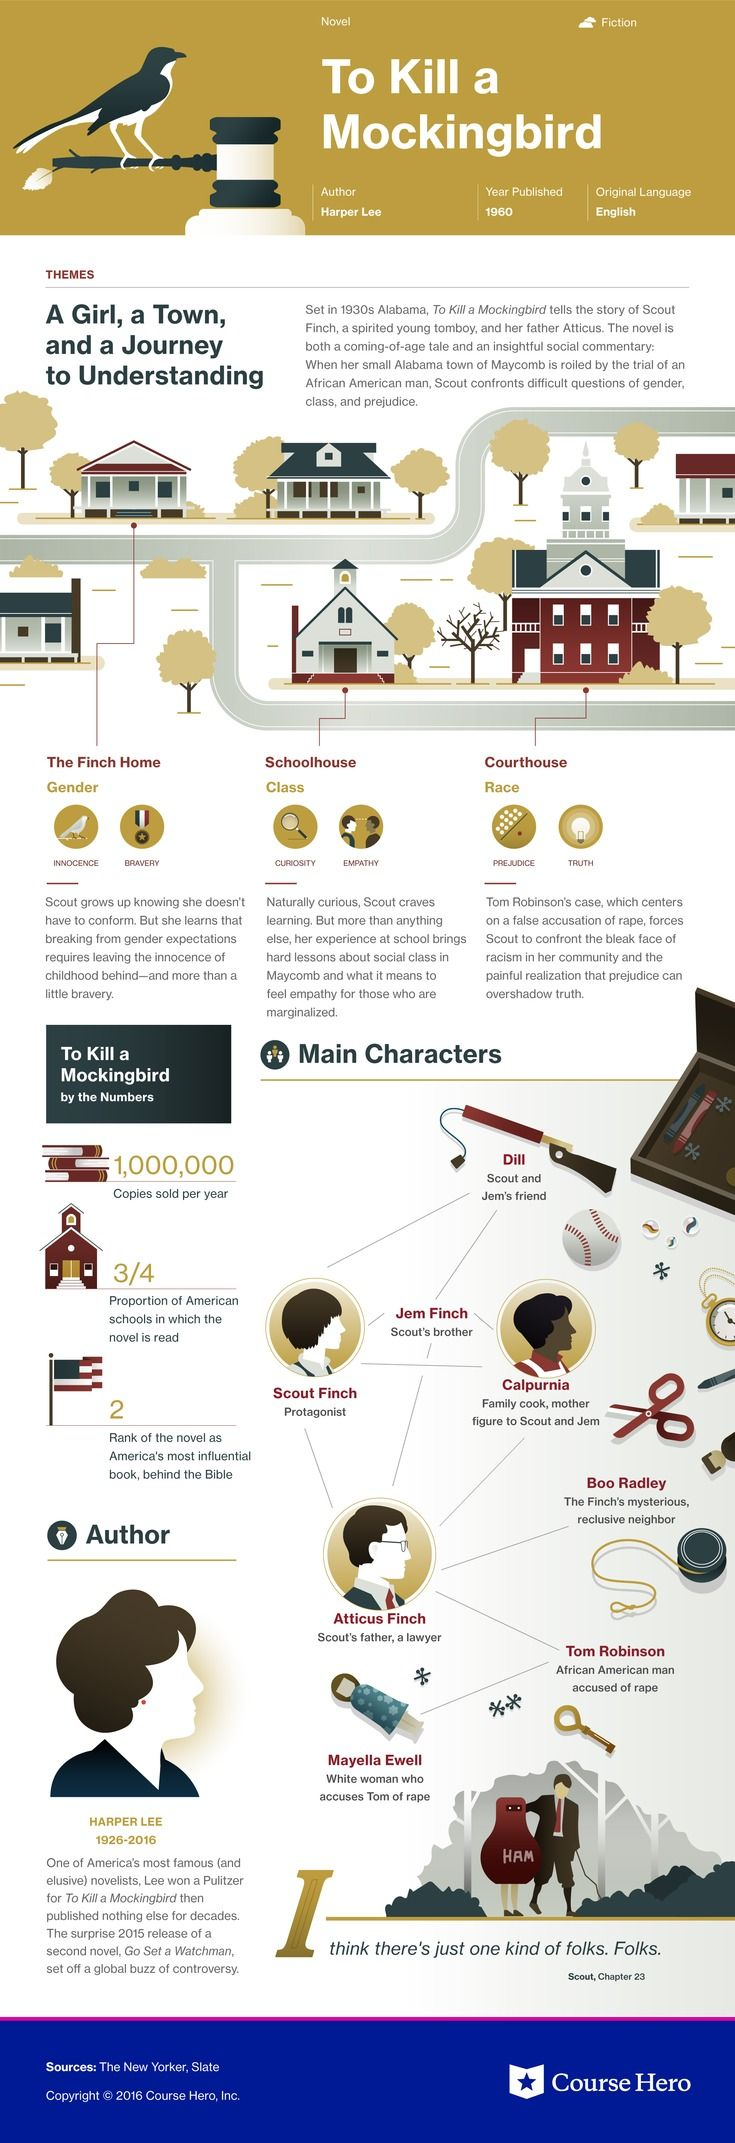 This @CourseHero infographic on To Kill a Mockingbird is both visually stunning and informative!